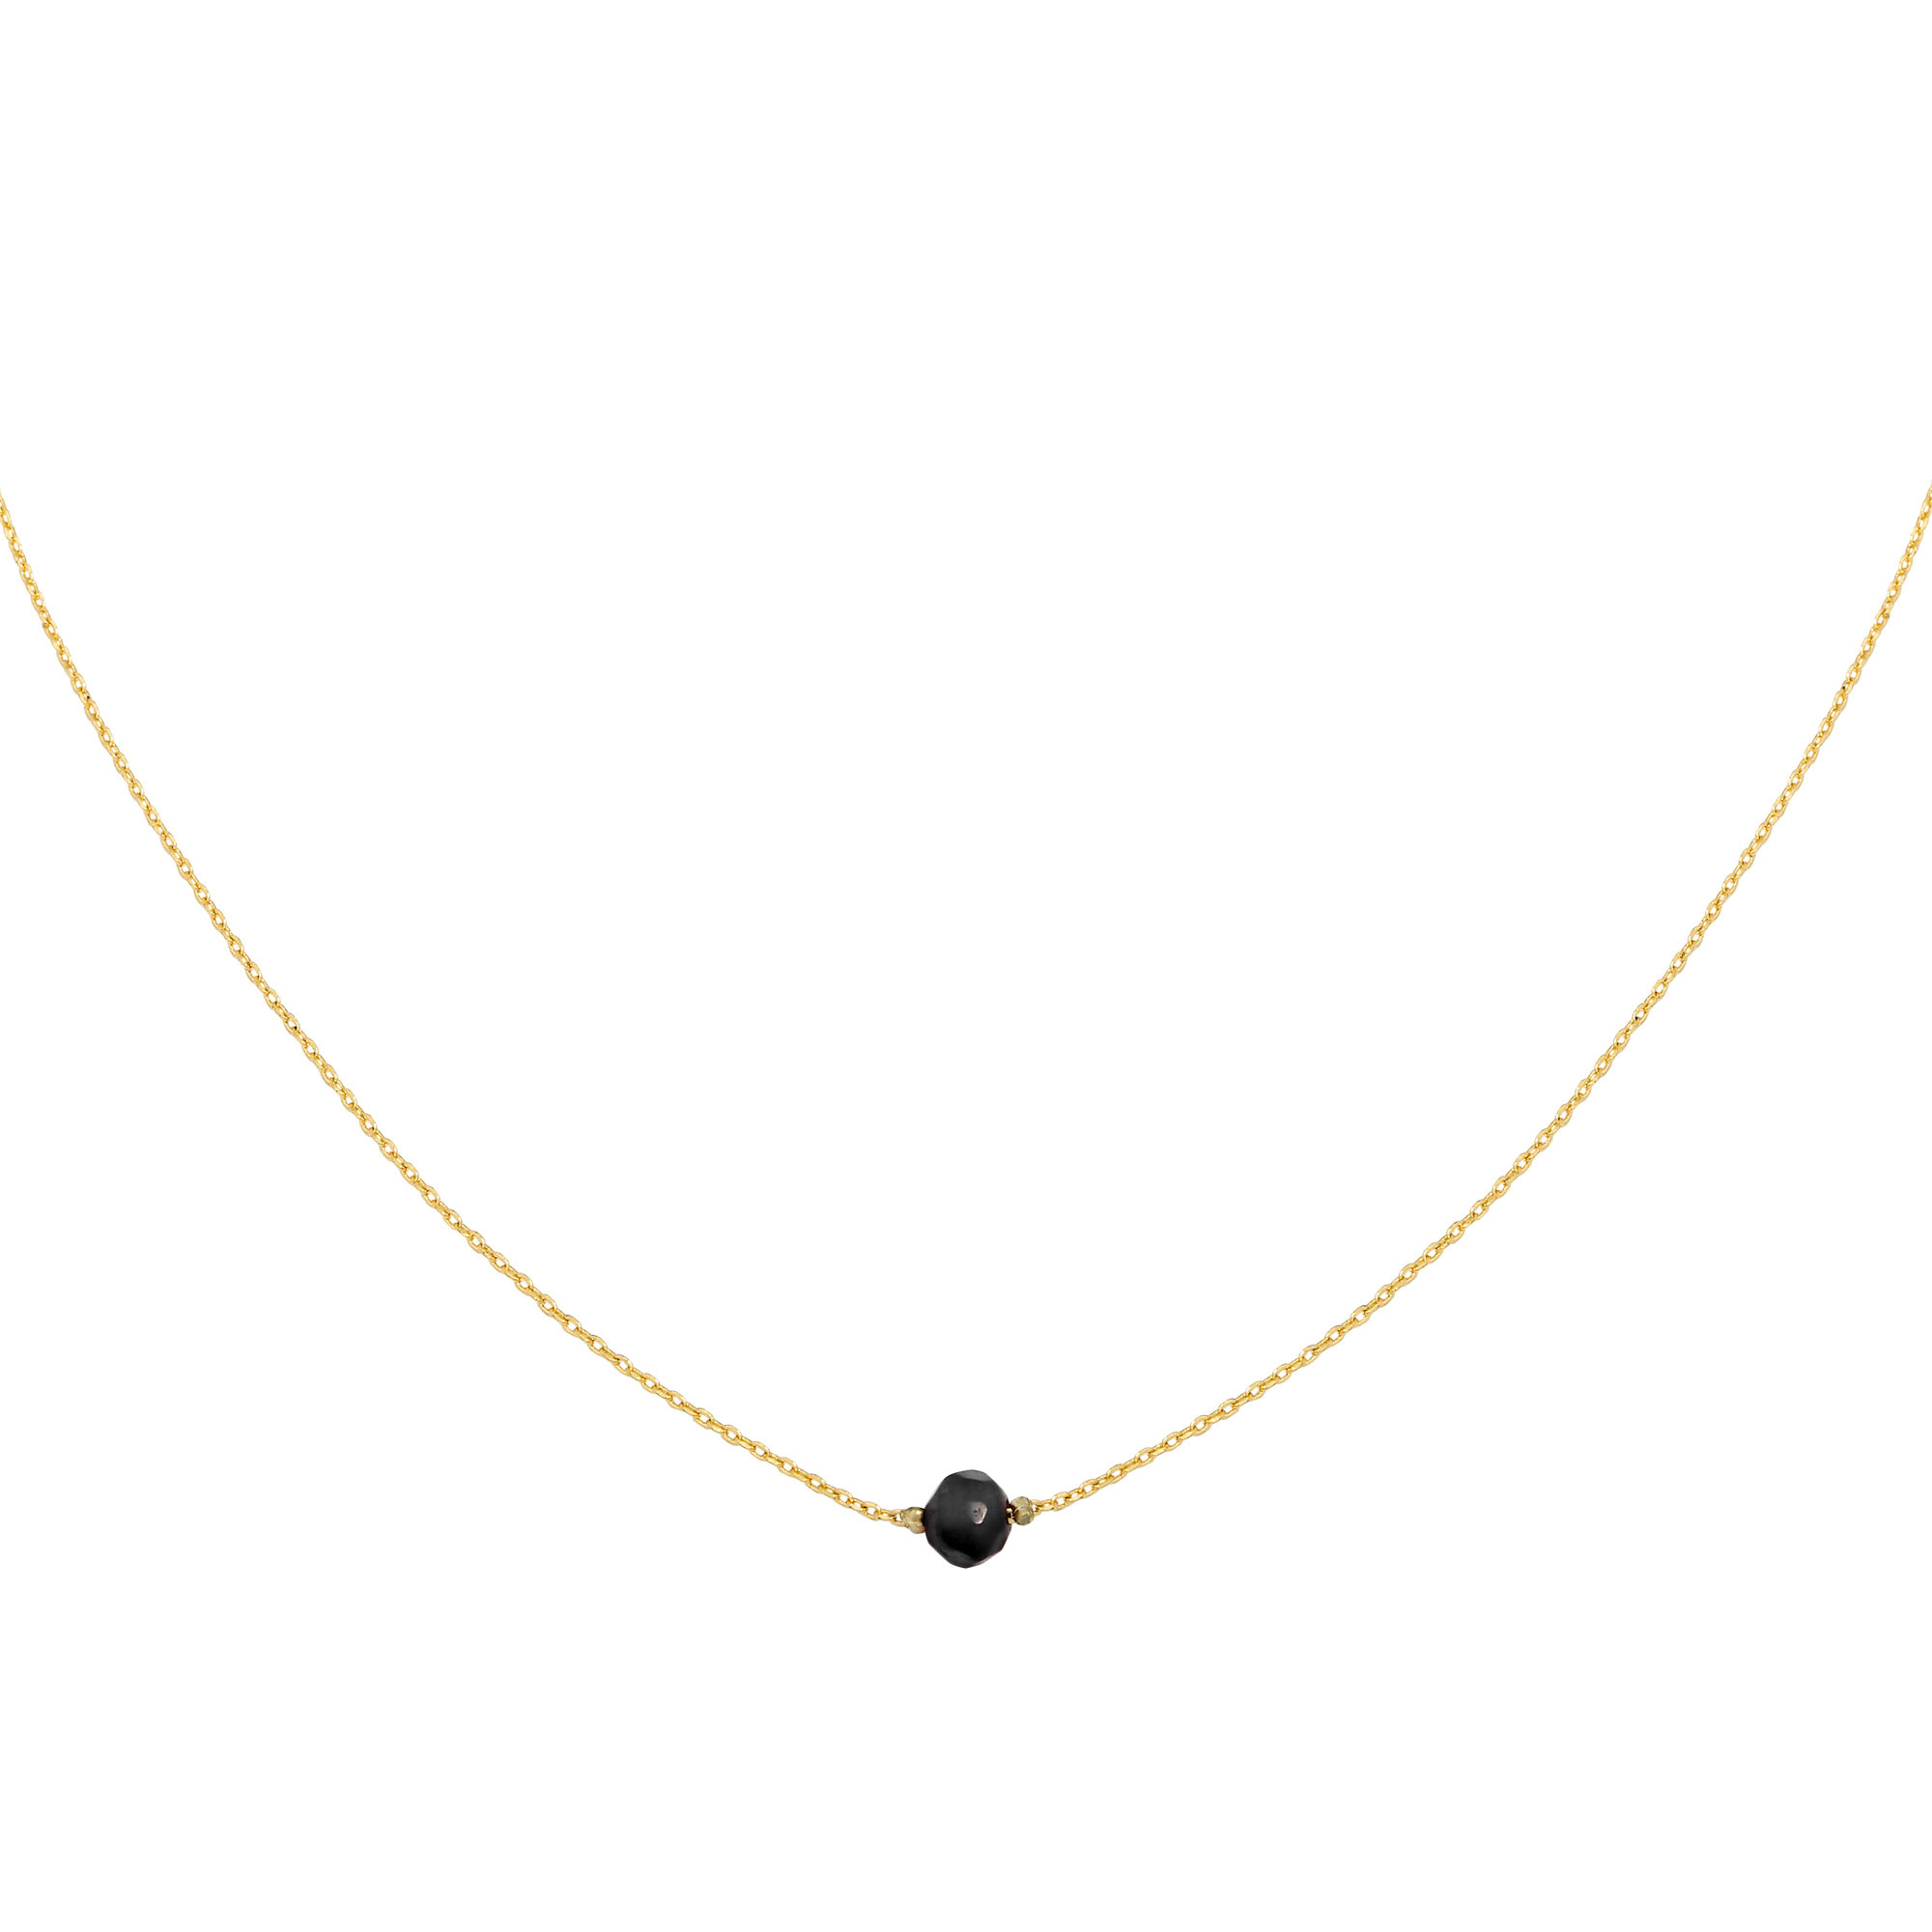 With love Necklace little one - gold black